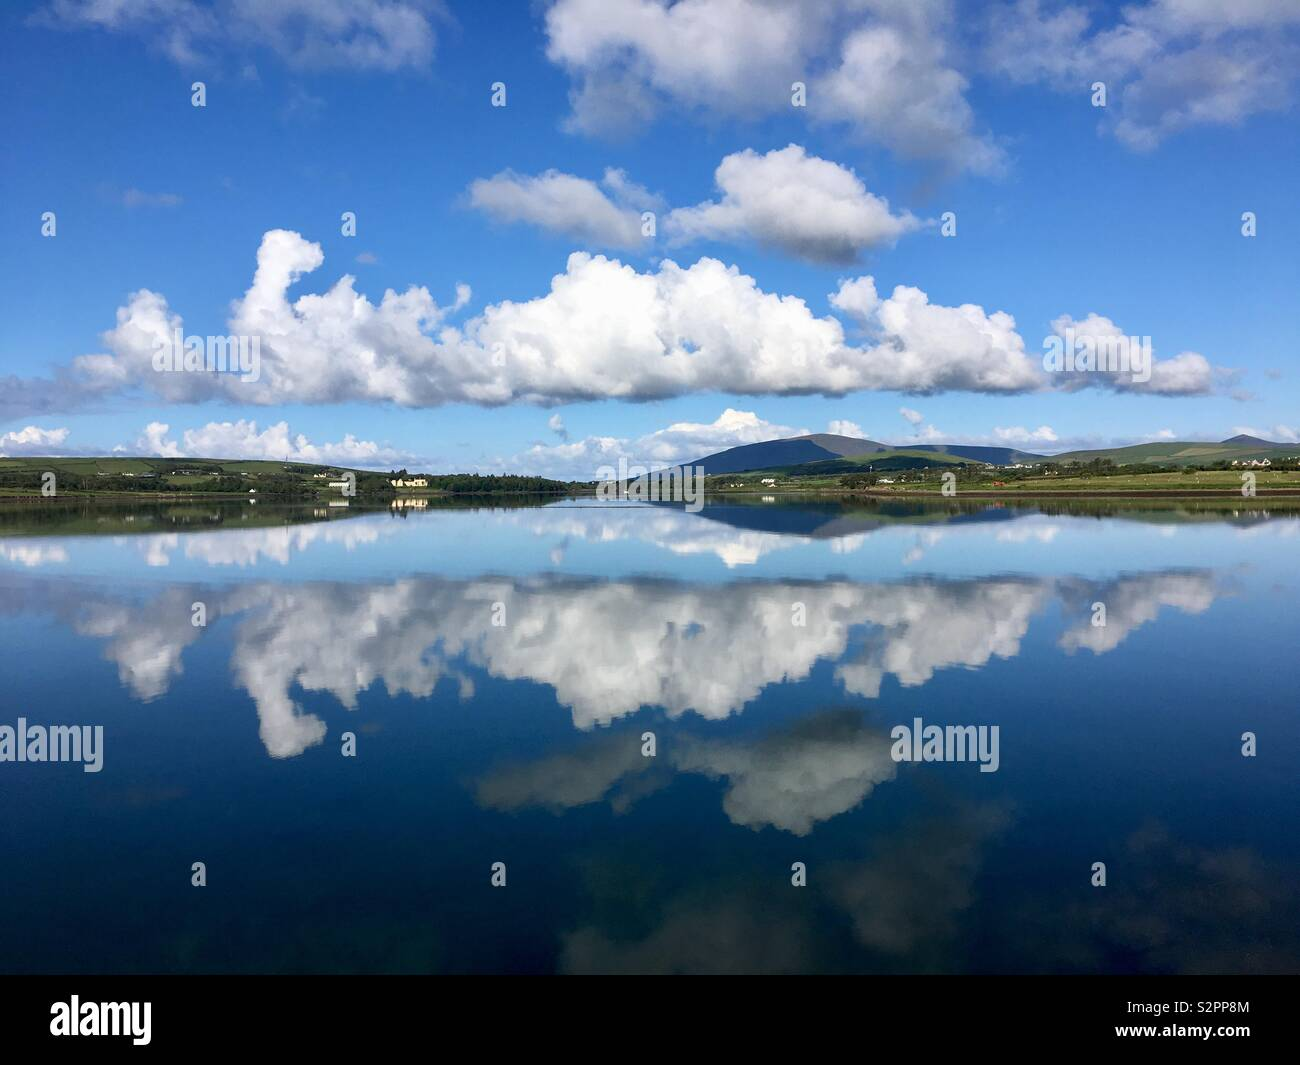 Perfect reflection on the water at Dingle, Ireland - Stock Image